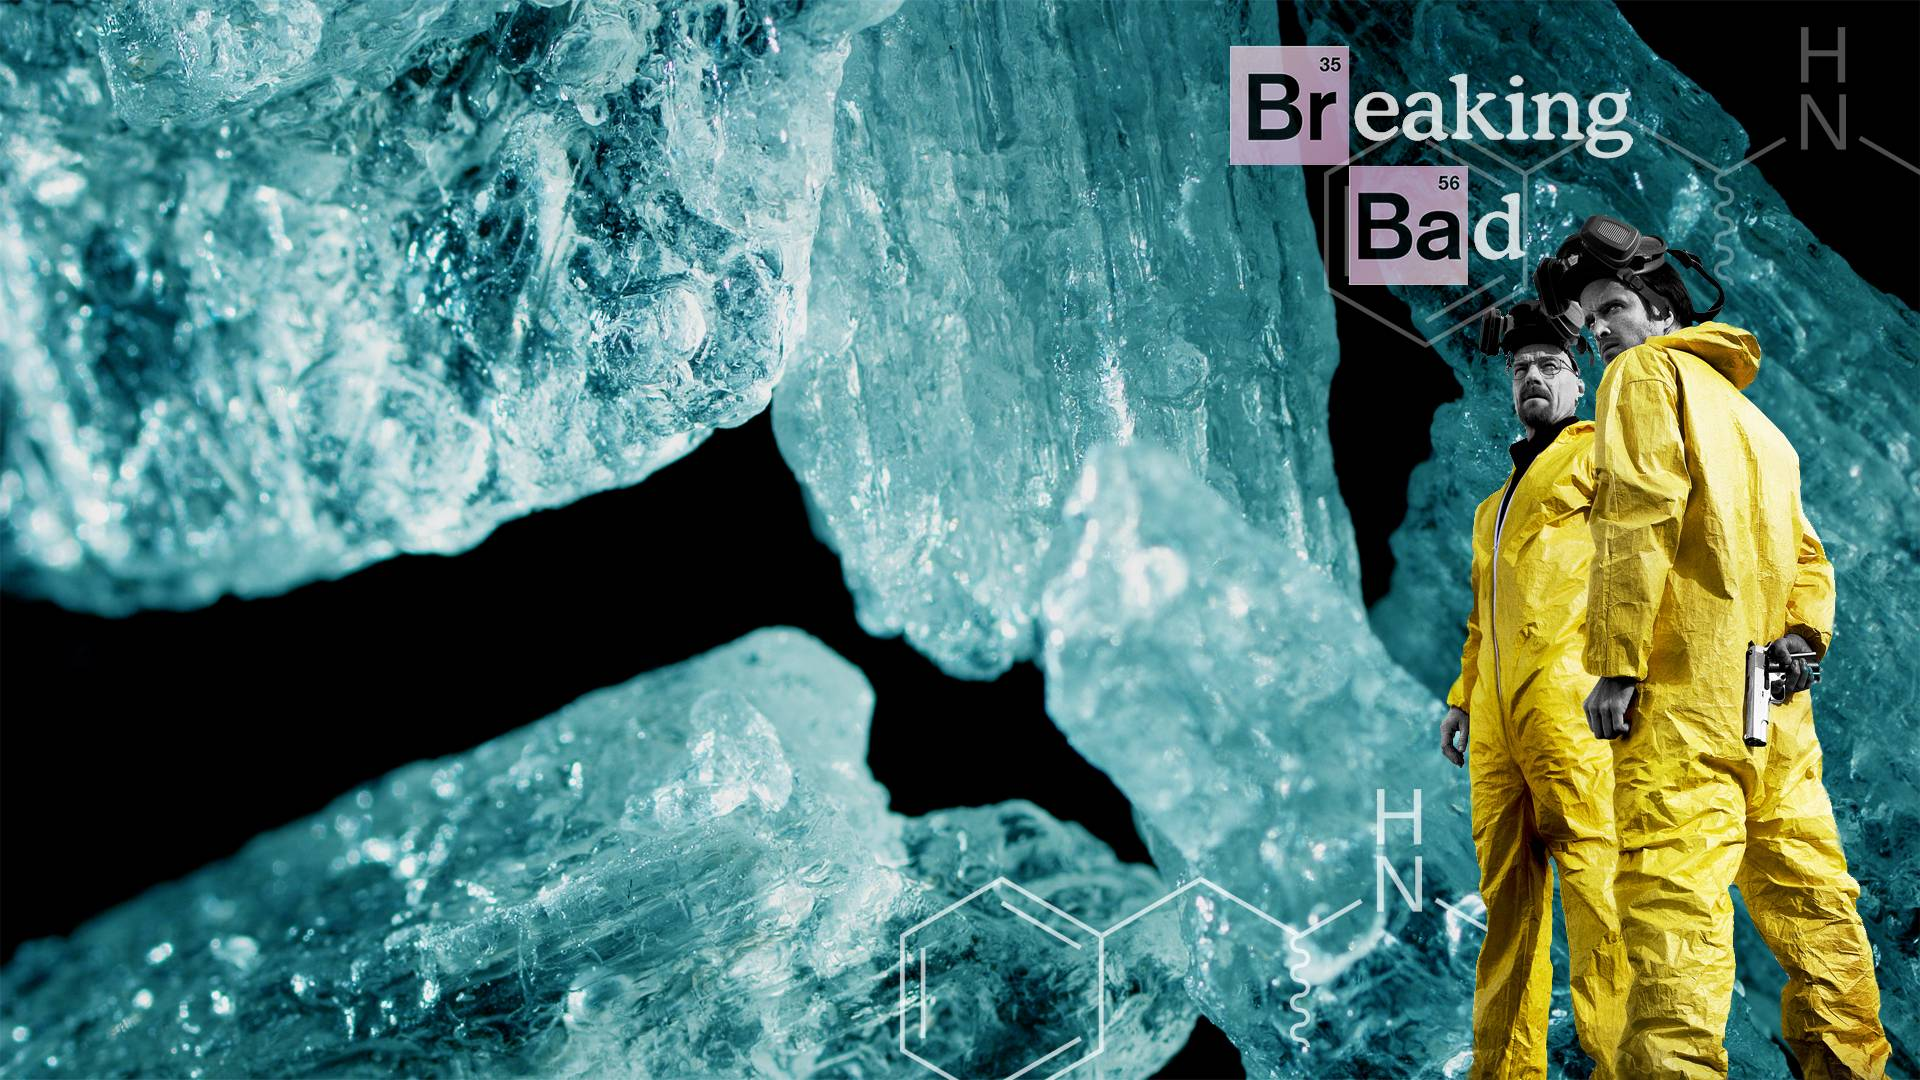 DeviantArt: More Like Breaking Bad 1080p Wallpapers by Ghosty94